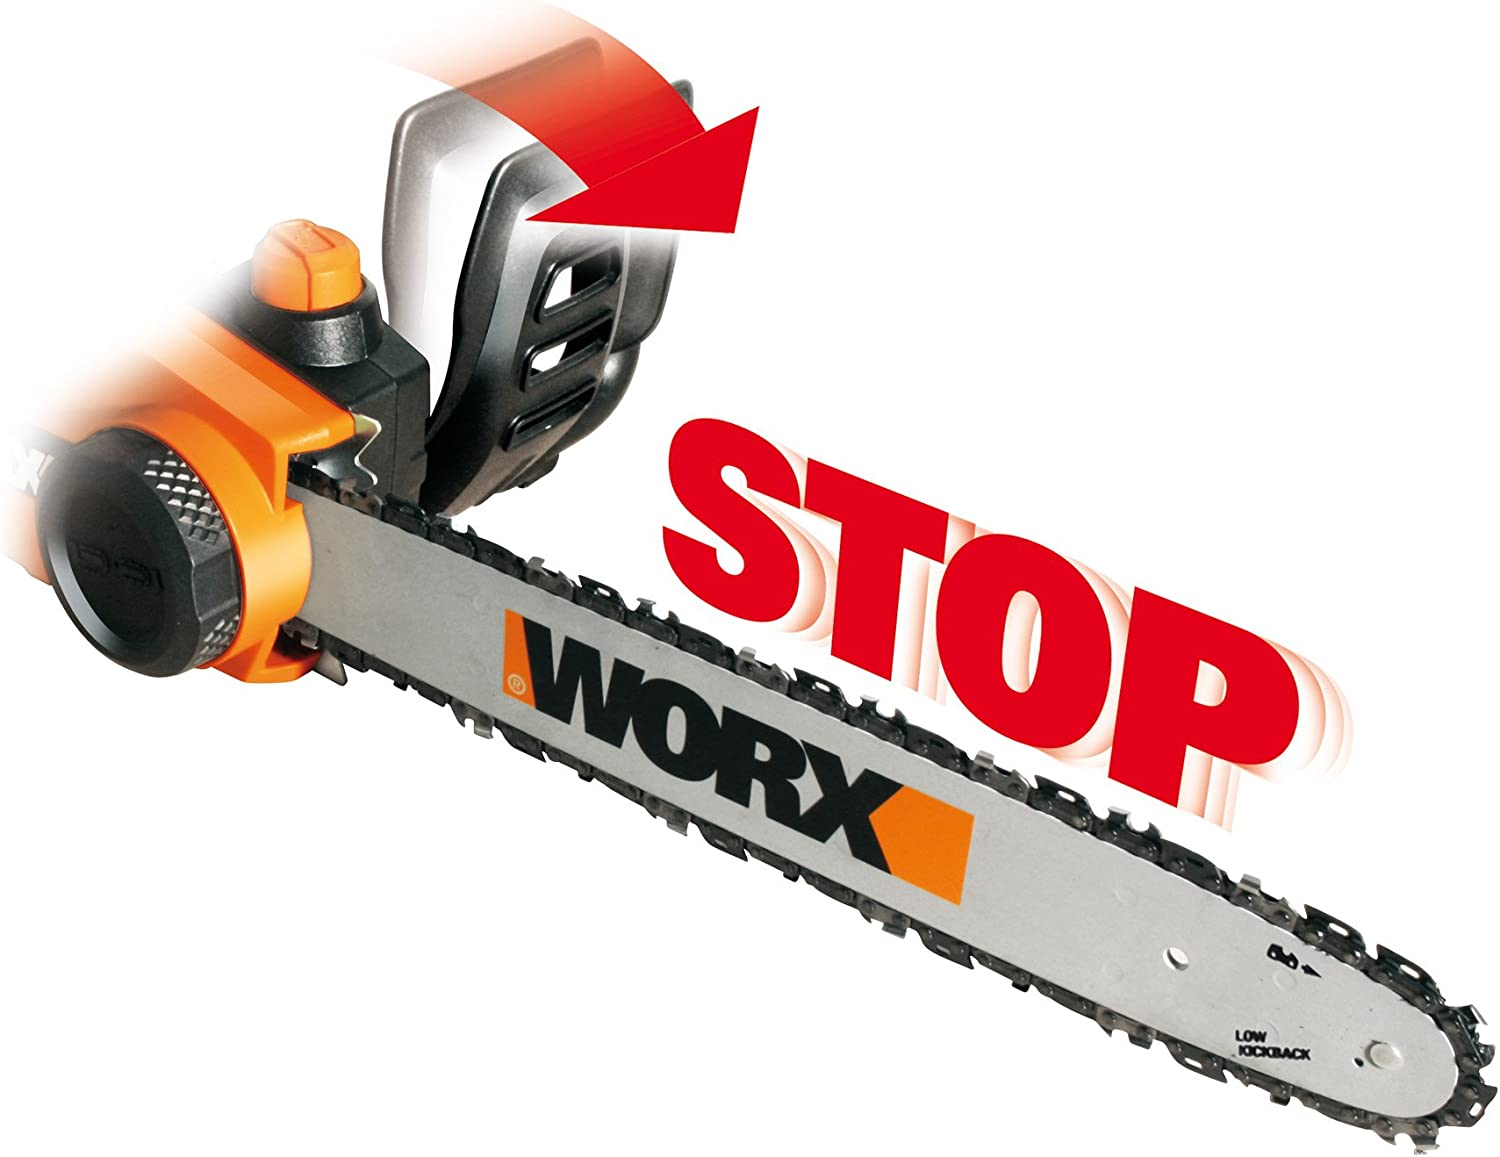 WORX WG3041 Chainsaws product image 6